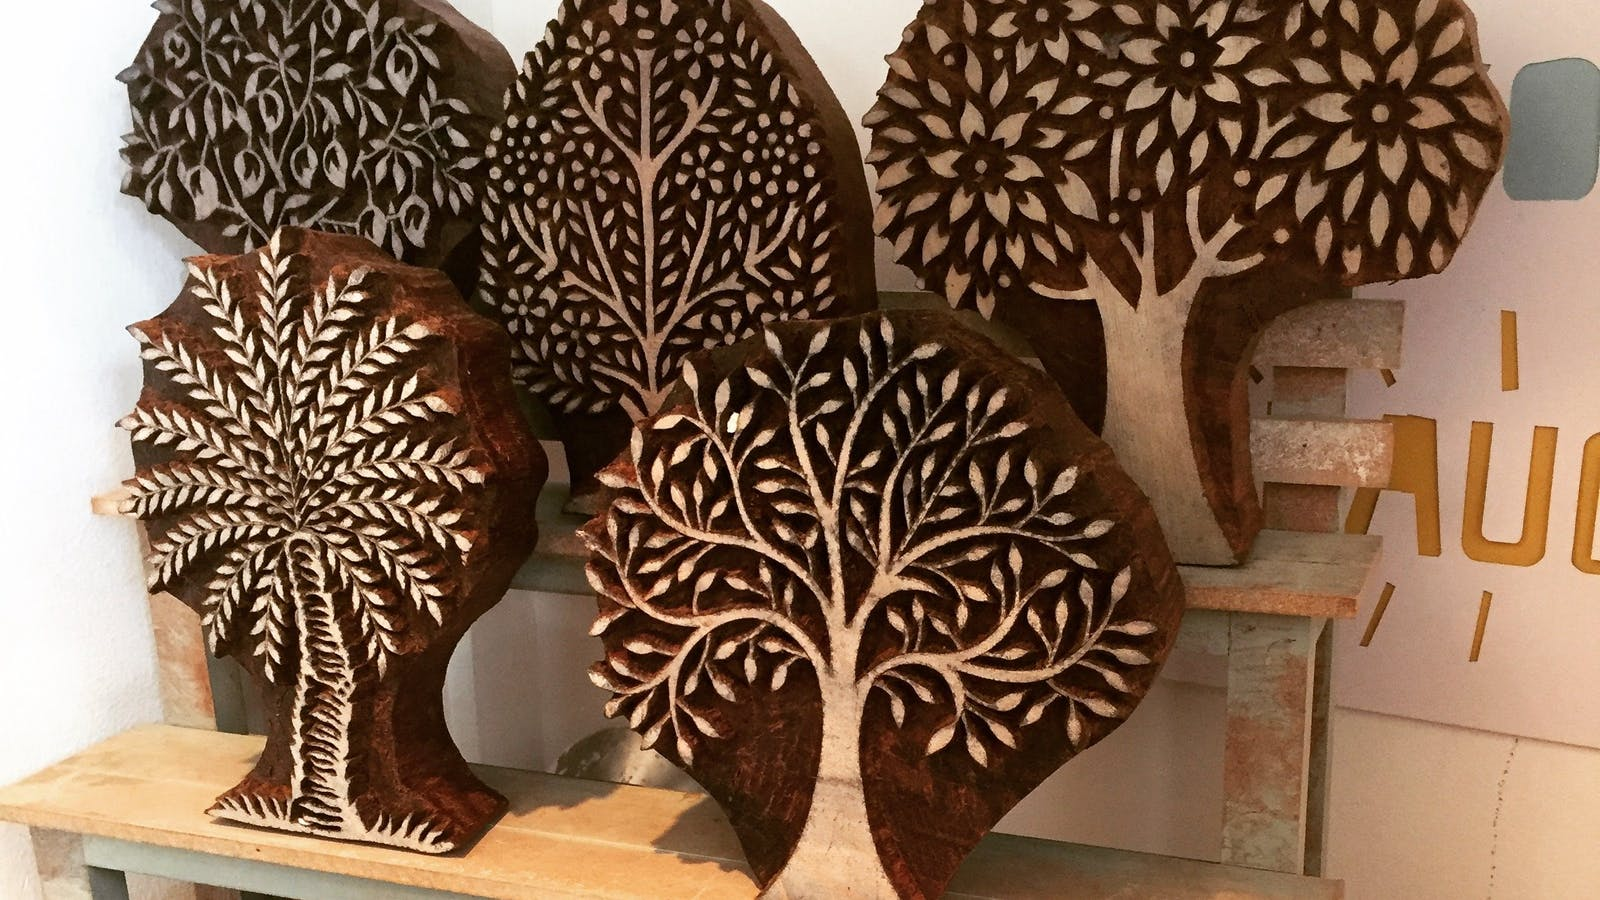 Wood Blocks from India